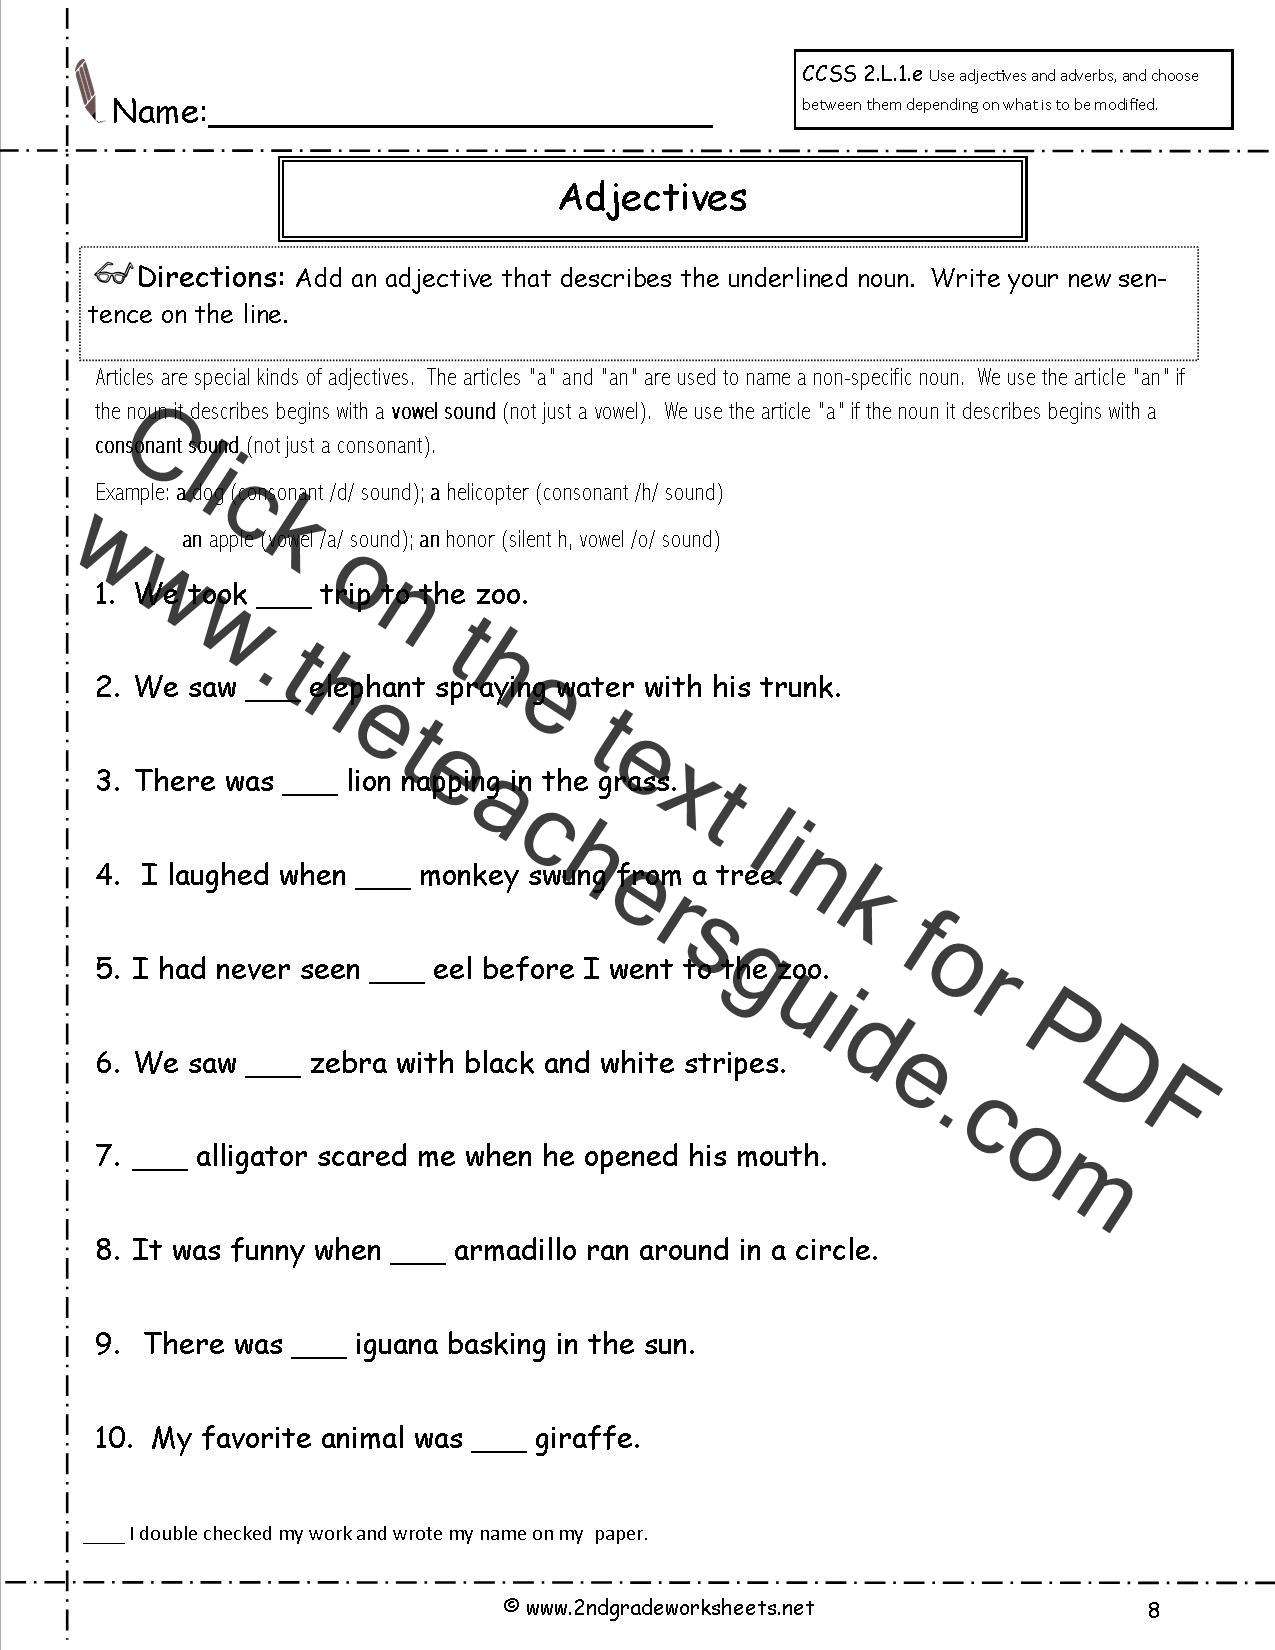 Uncategorized 2nd Grade Writing Worksheets free languagegrammar worksheets and printouts adjectives worksheets